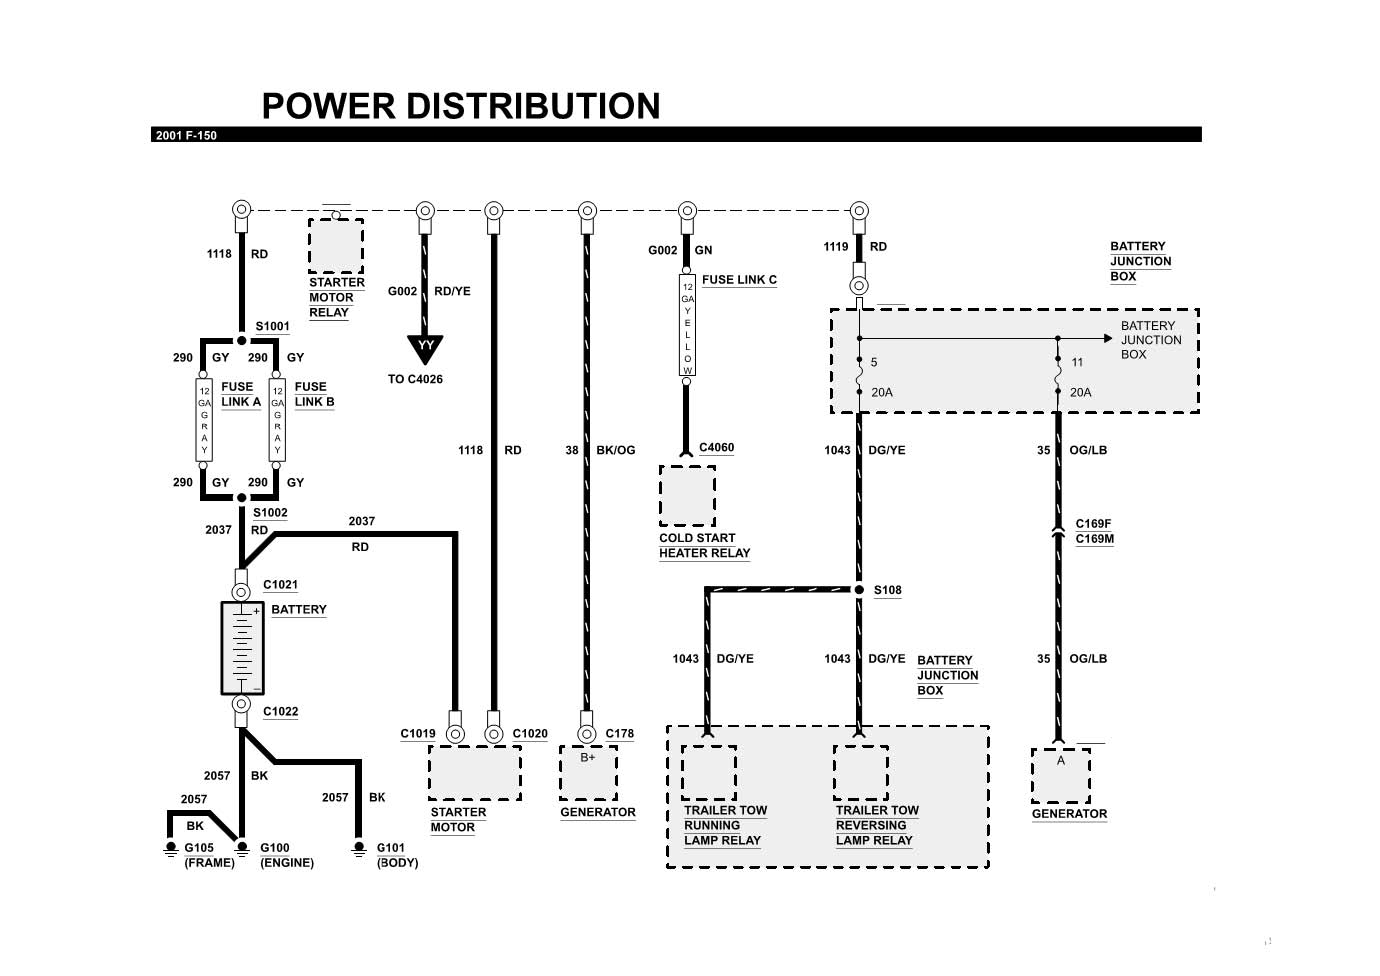 1995 Isuzu Rodeo Alternator Wiring Diagram Will Be 2001 2003 Electrical Schematics Specs